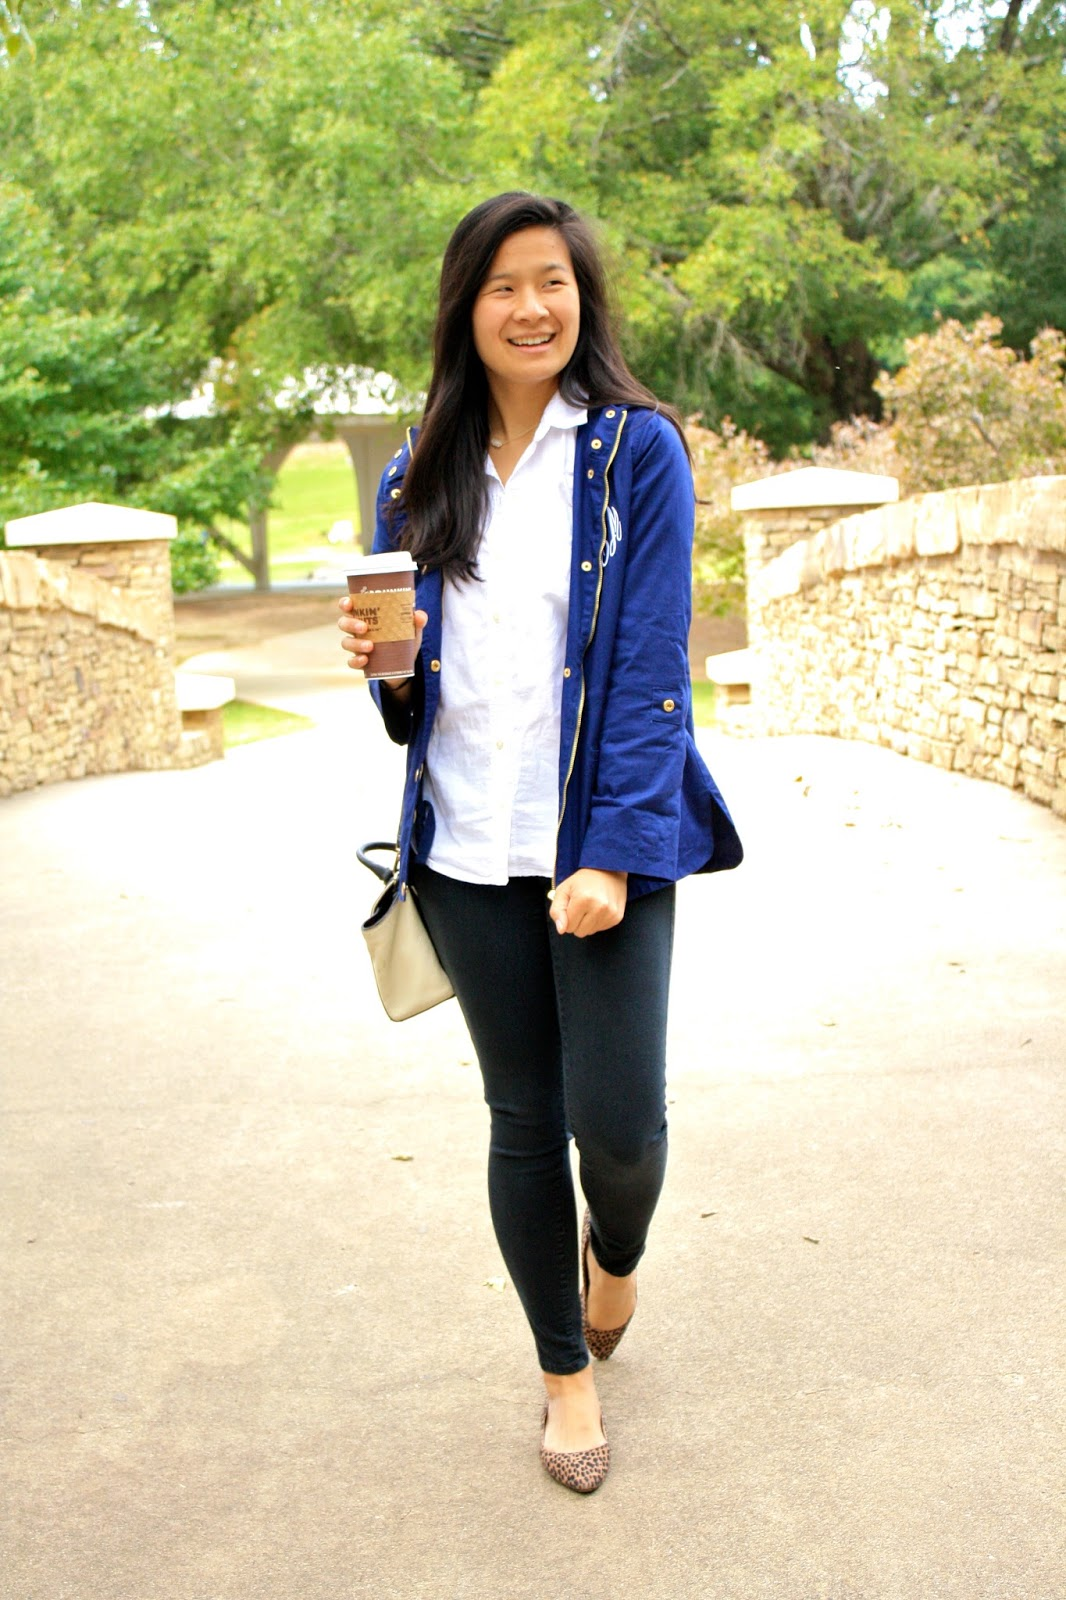 Marley Lilly Monogram jacket - Classic fall outfit inspiration